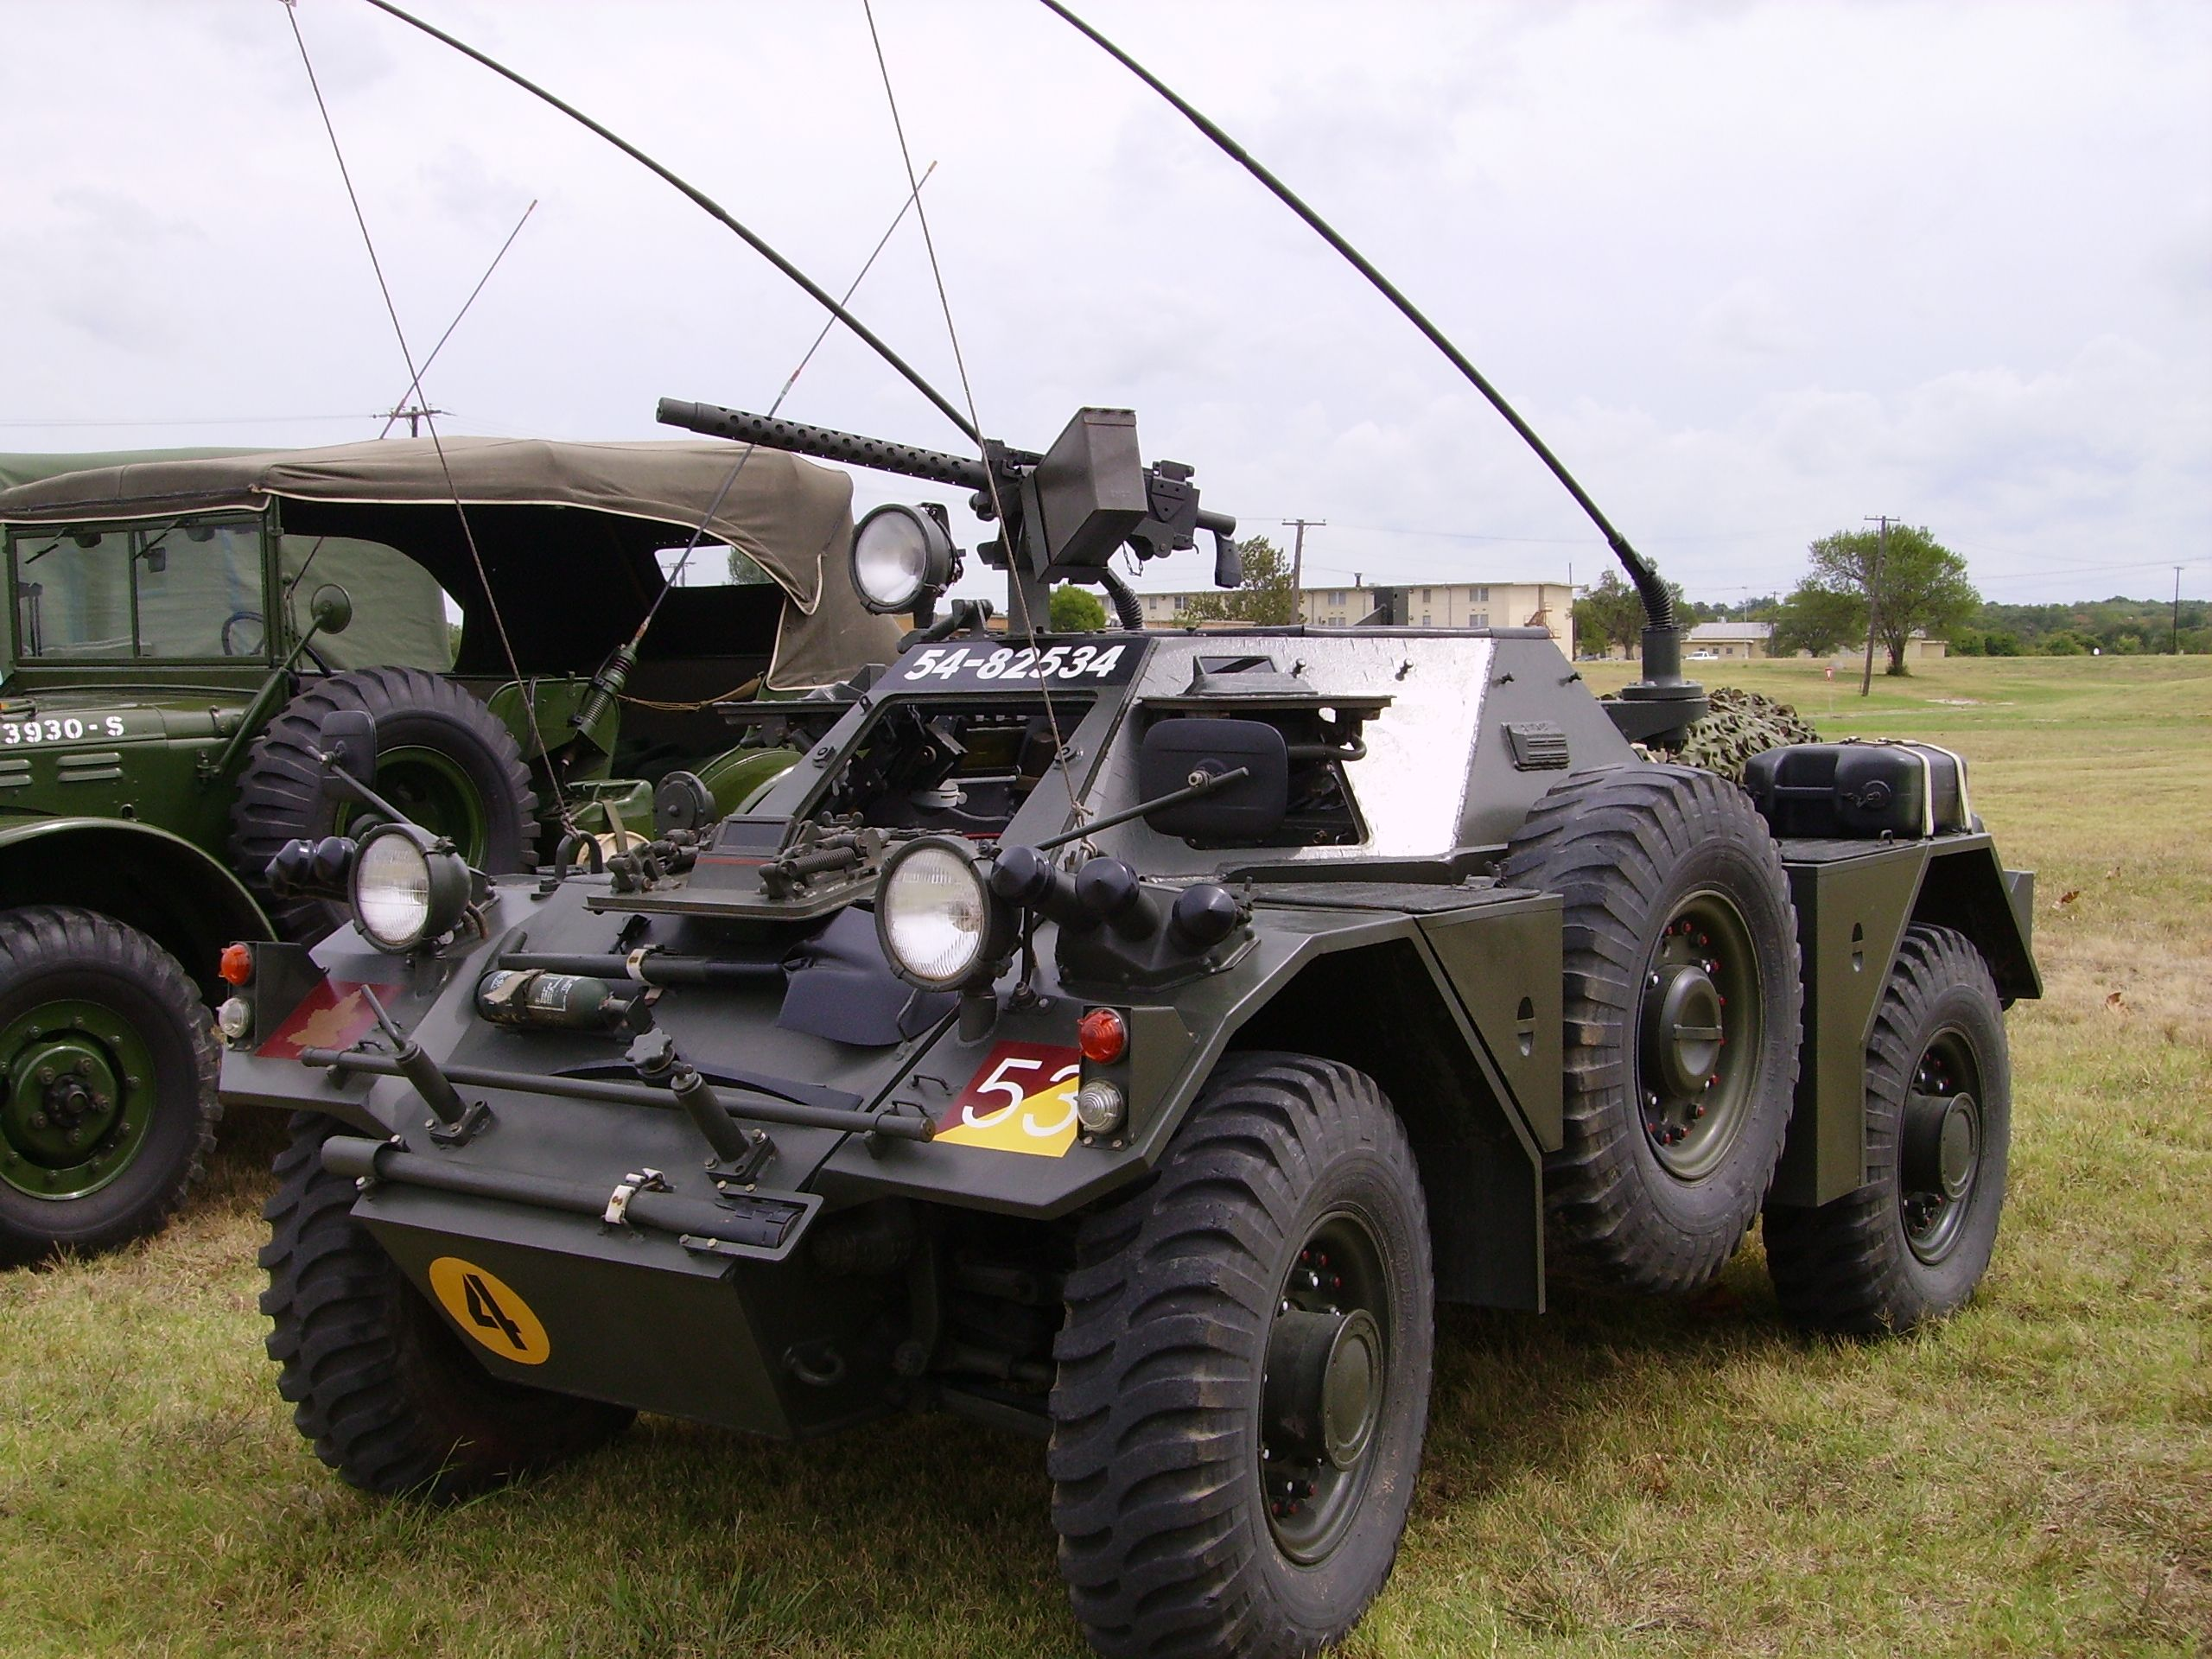 Ferret Scout Car Sideview By Darkwizard83 Deviantart Com With